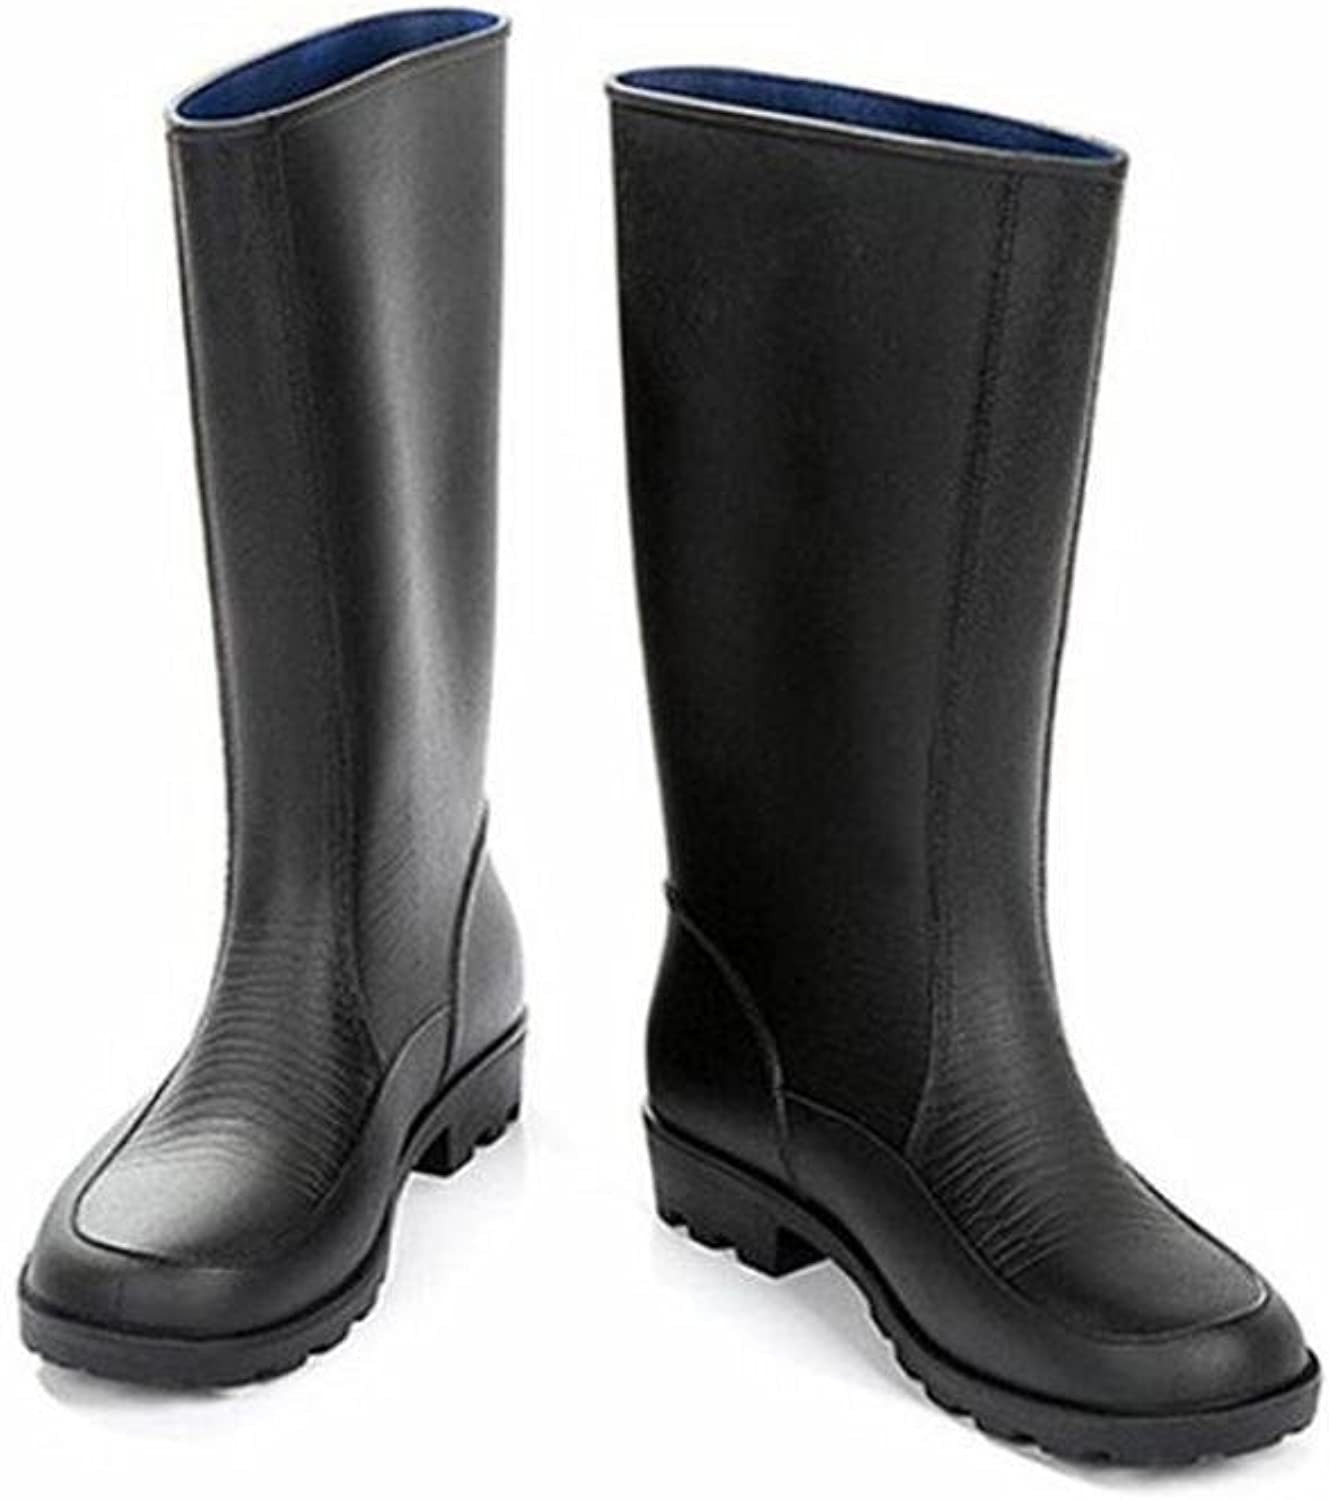 Men's Tall Rain Boots Labor Insurance Car Wash Overshoes Fishing Rubber High Boots